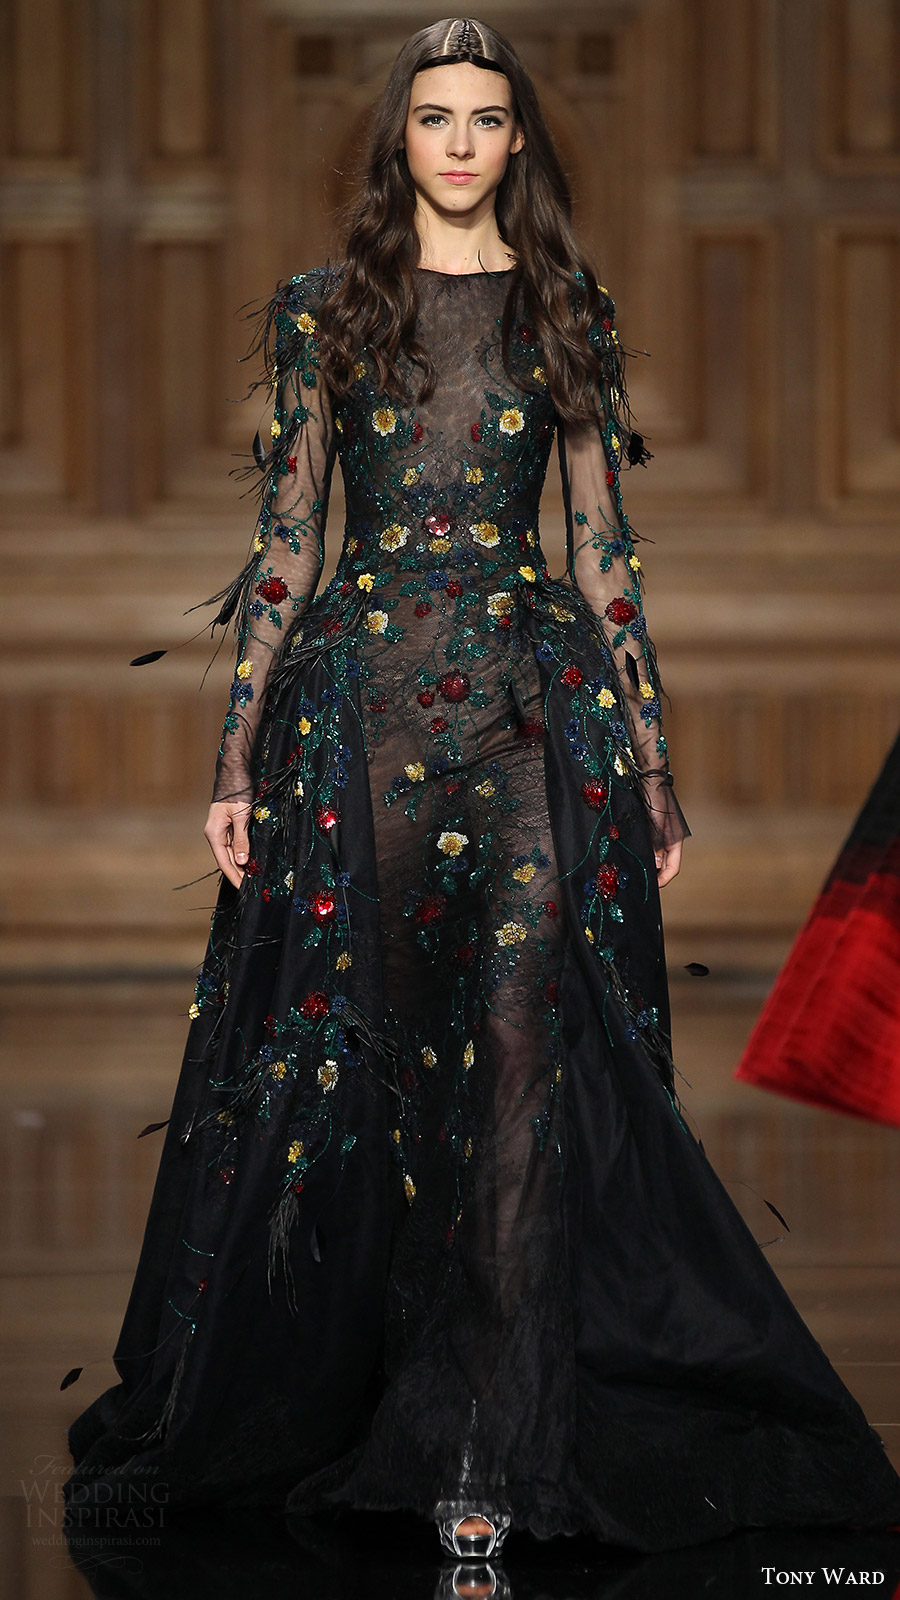 tony ward couture fall 2016 illusion long sleeves jewel neck sheer bodice sheath gown overskirt (34) mv black color